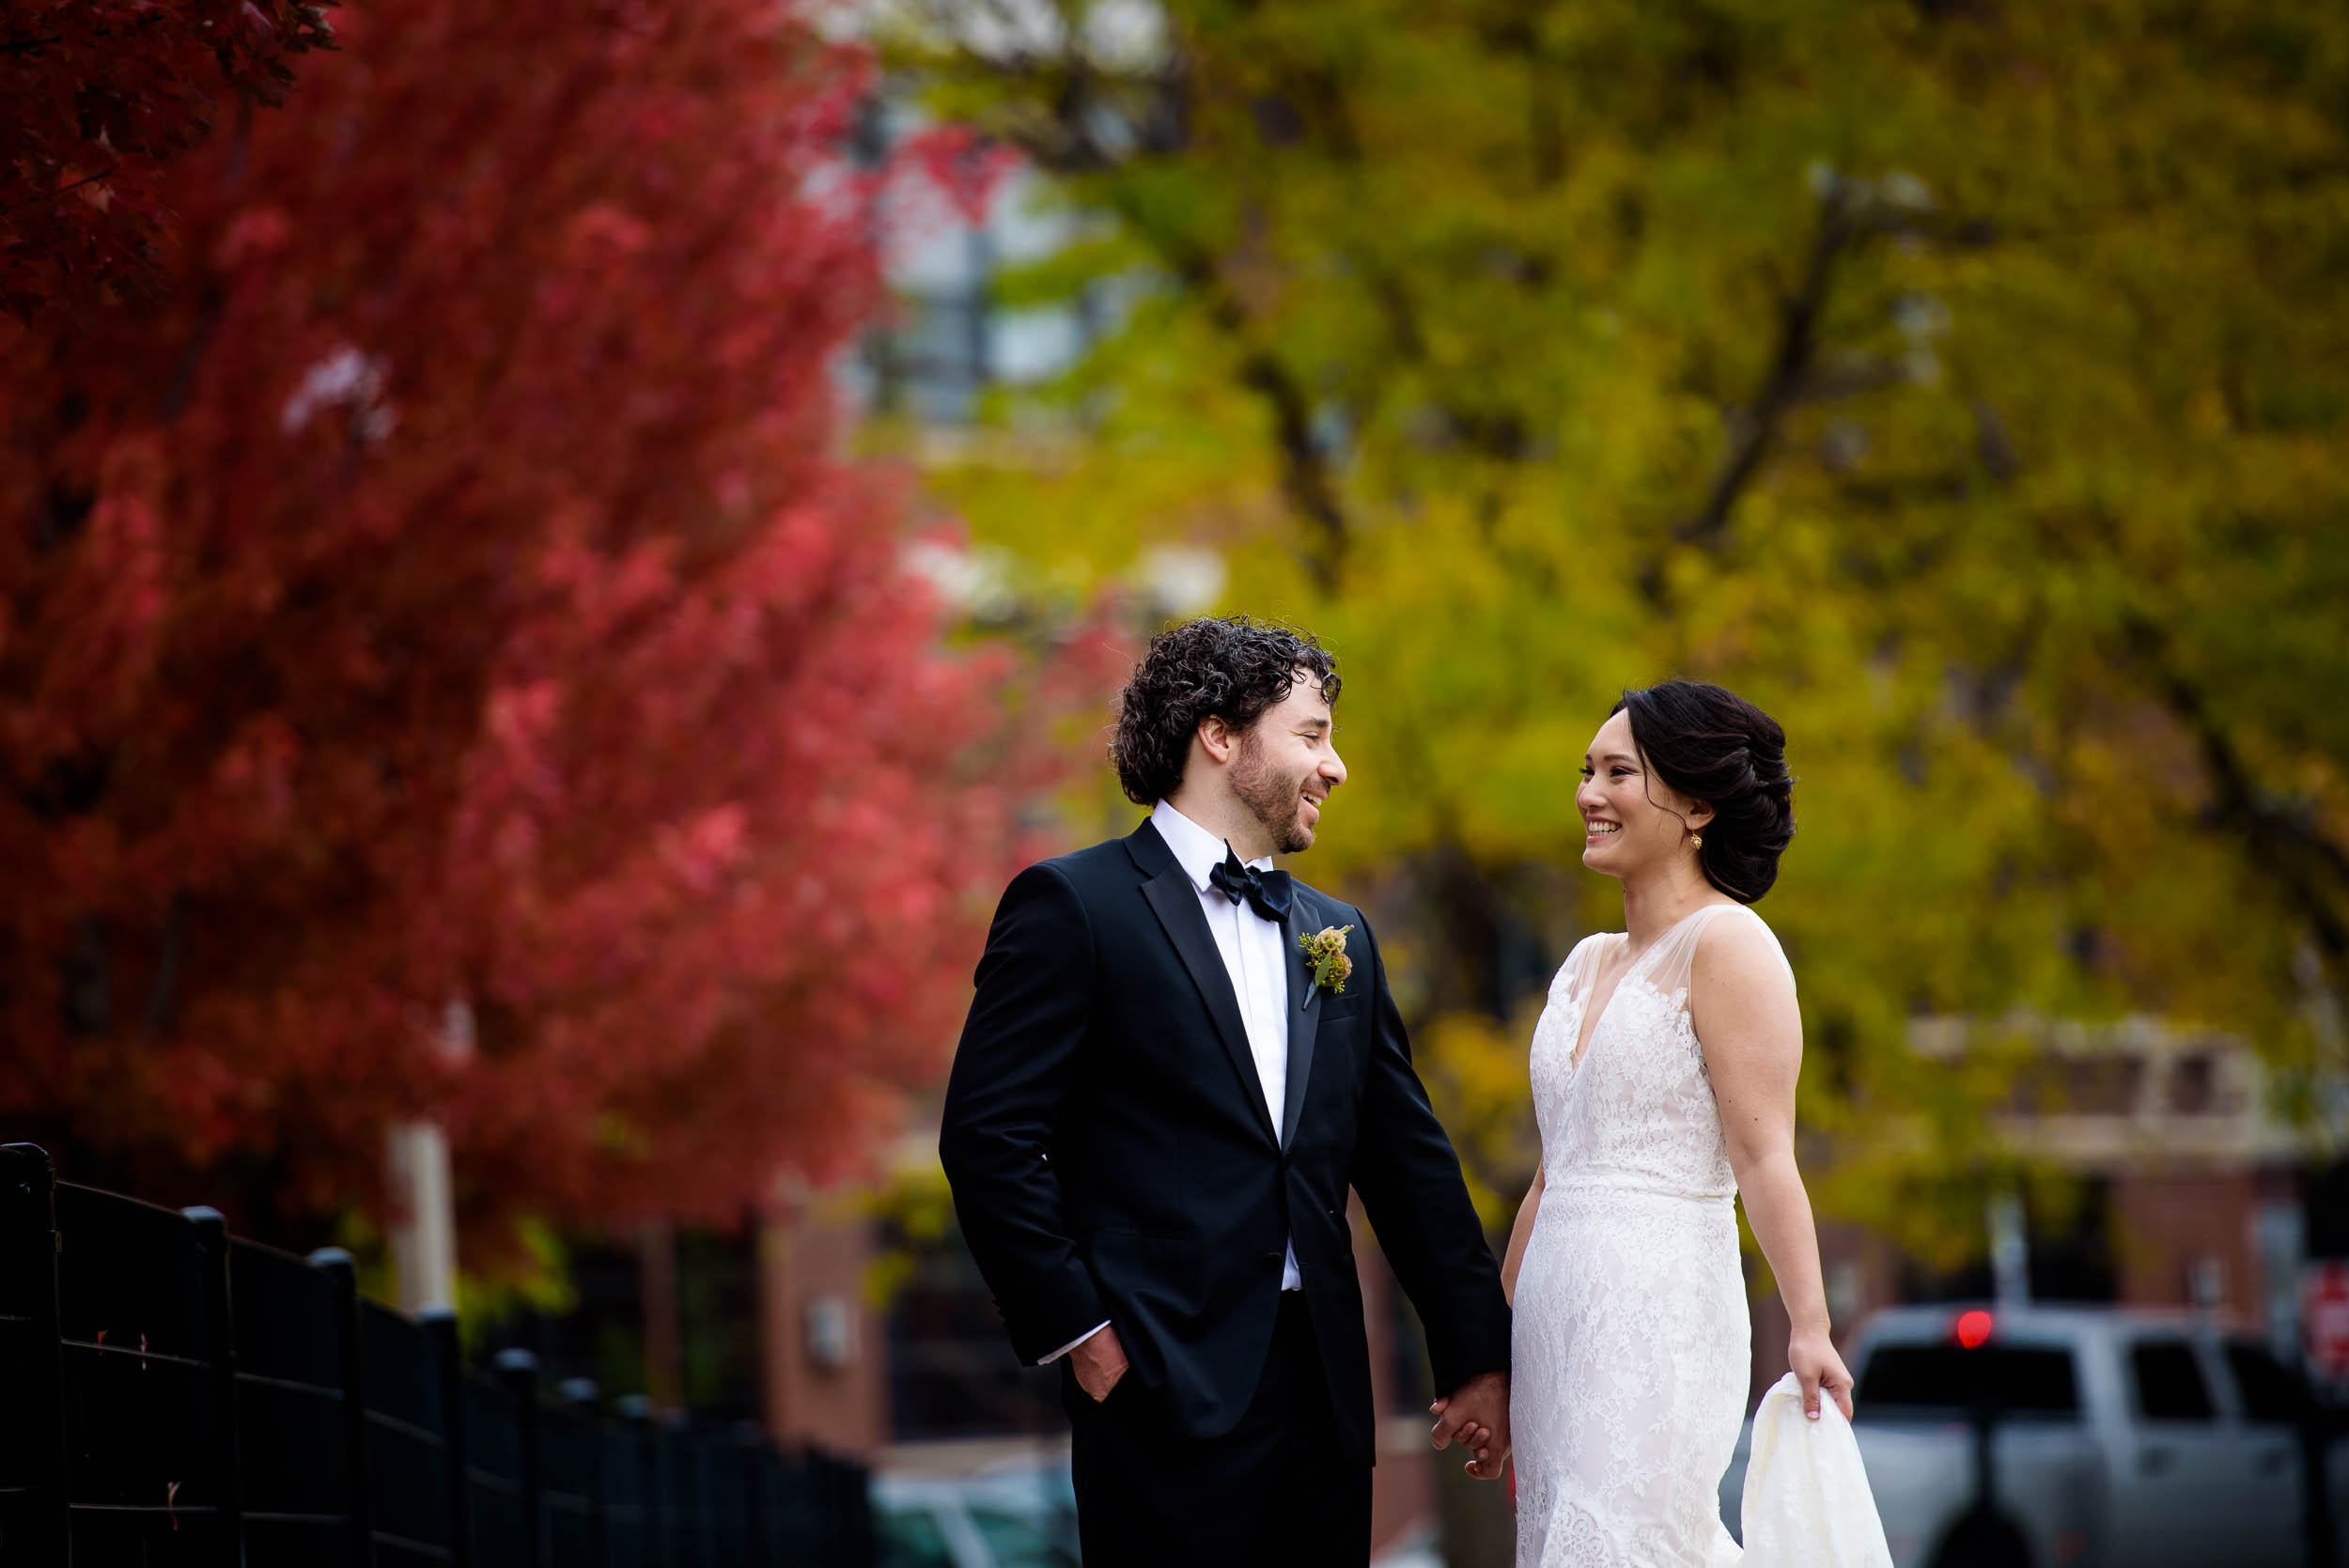 Bride and groom laugh together during their wedding photo session at Mary Bartelme Park Chicago.